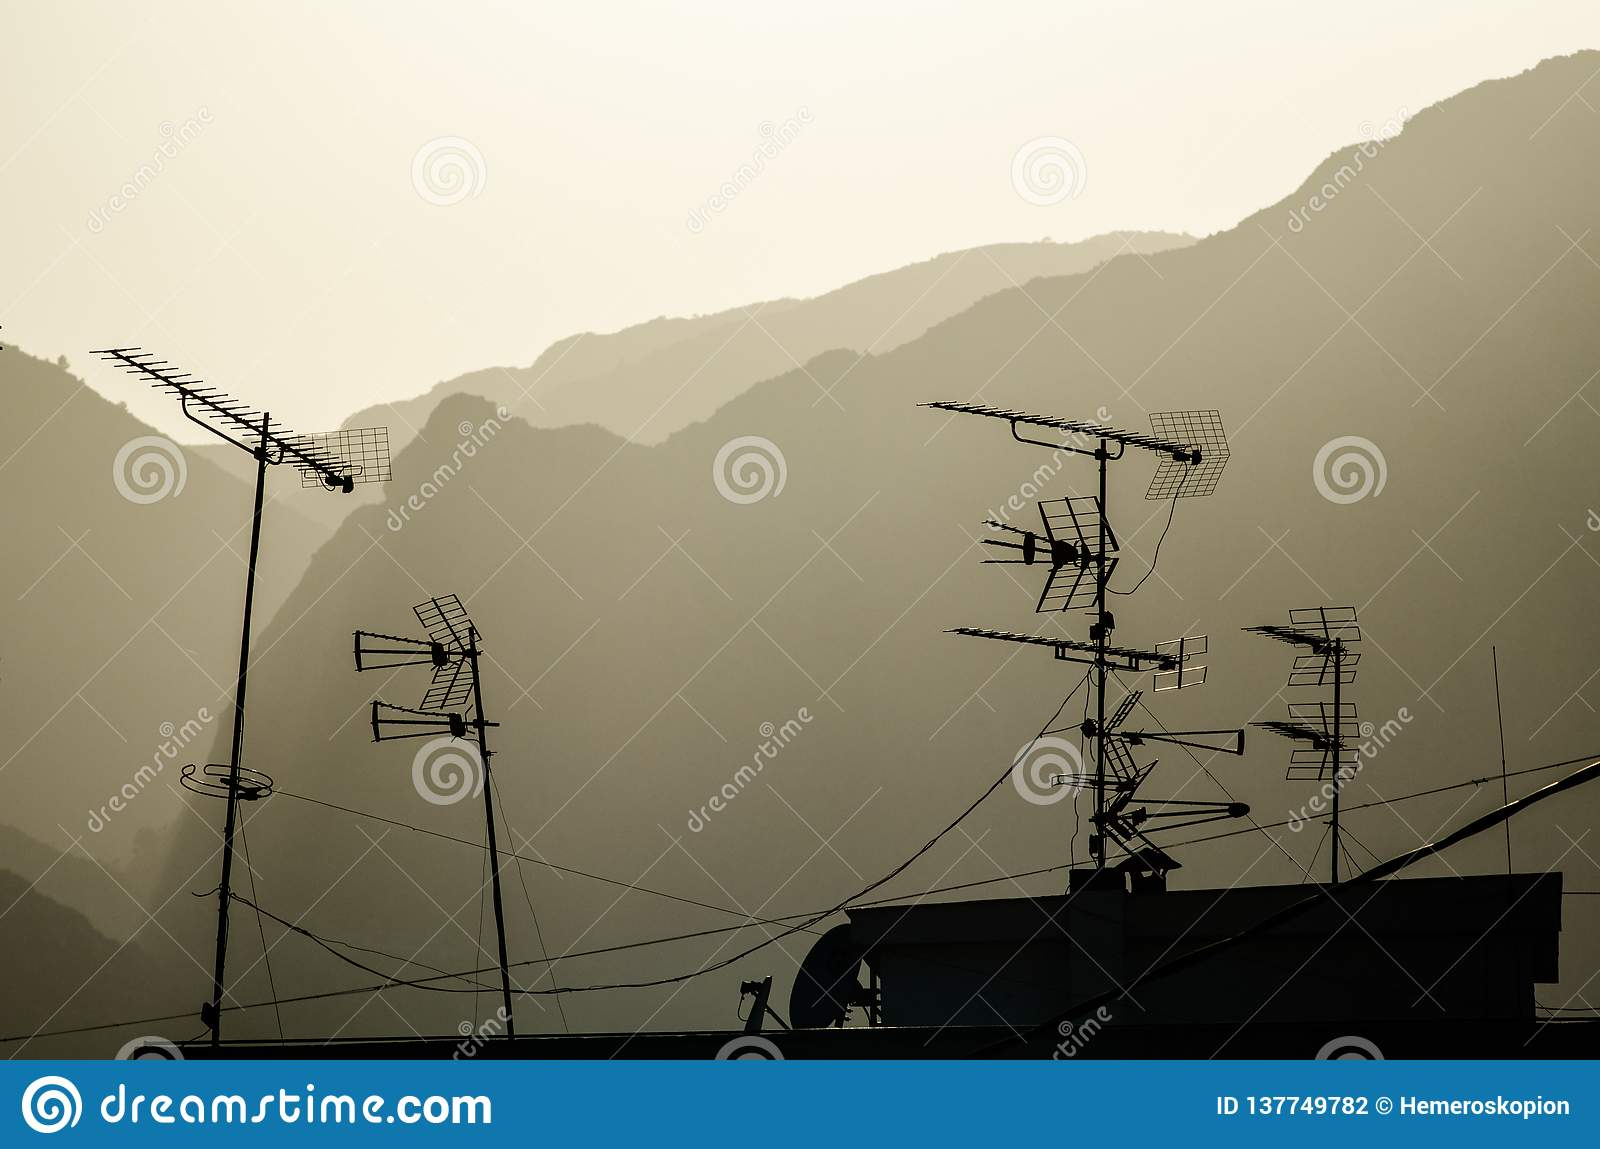 Television antennae on a rooftop